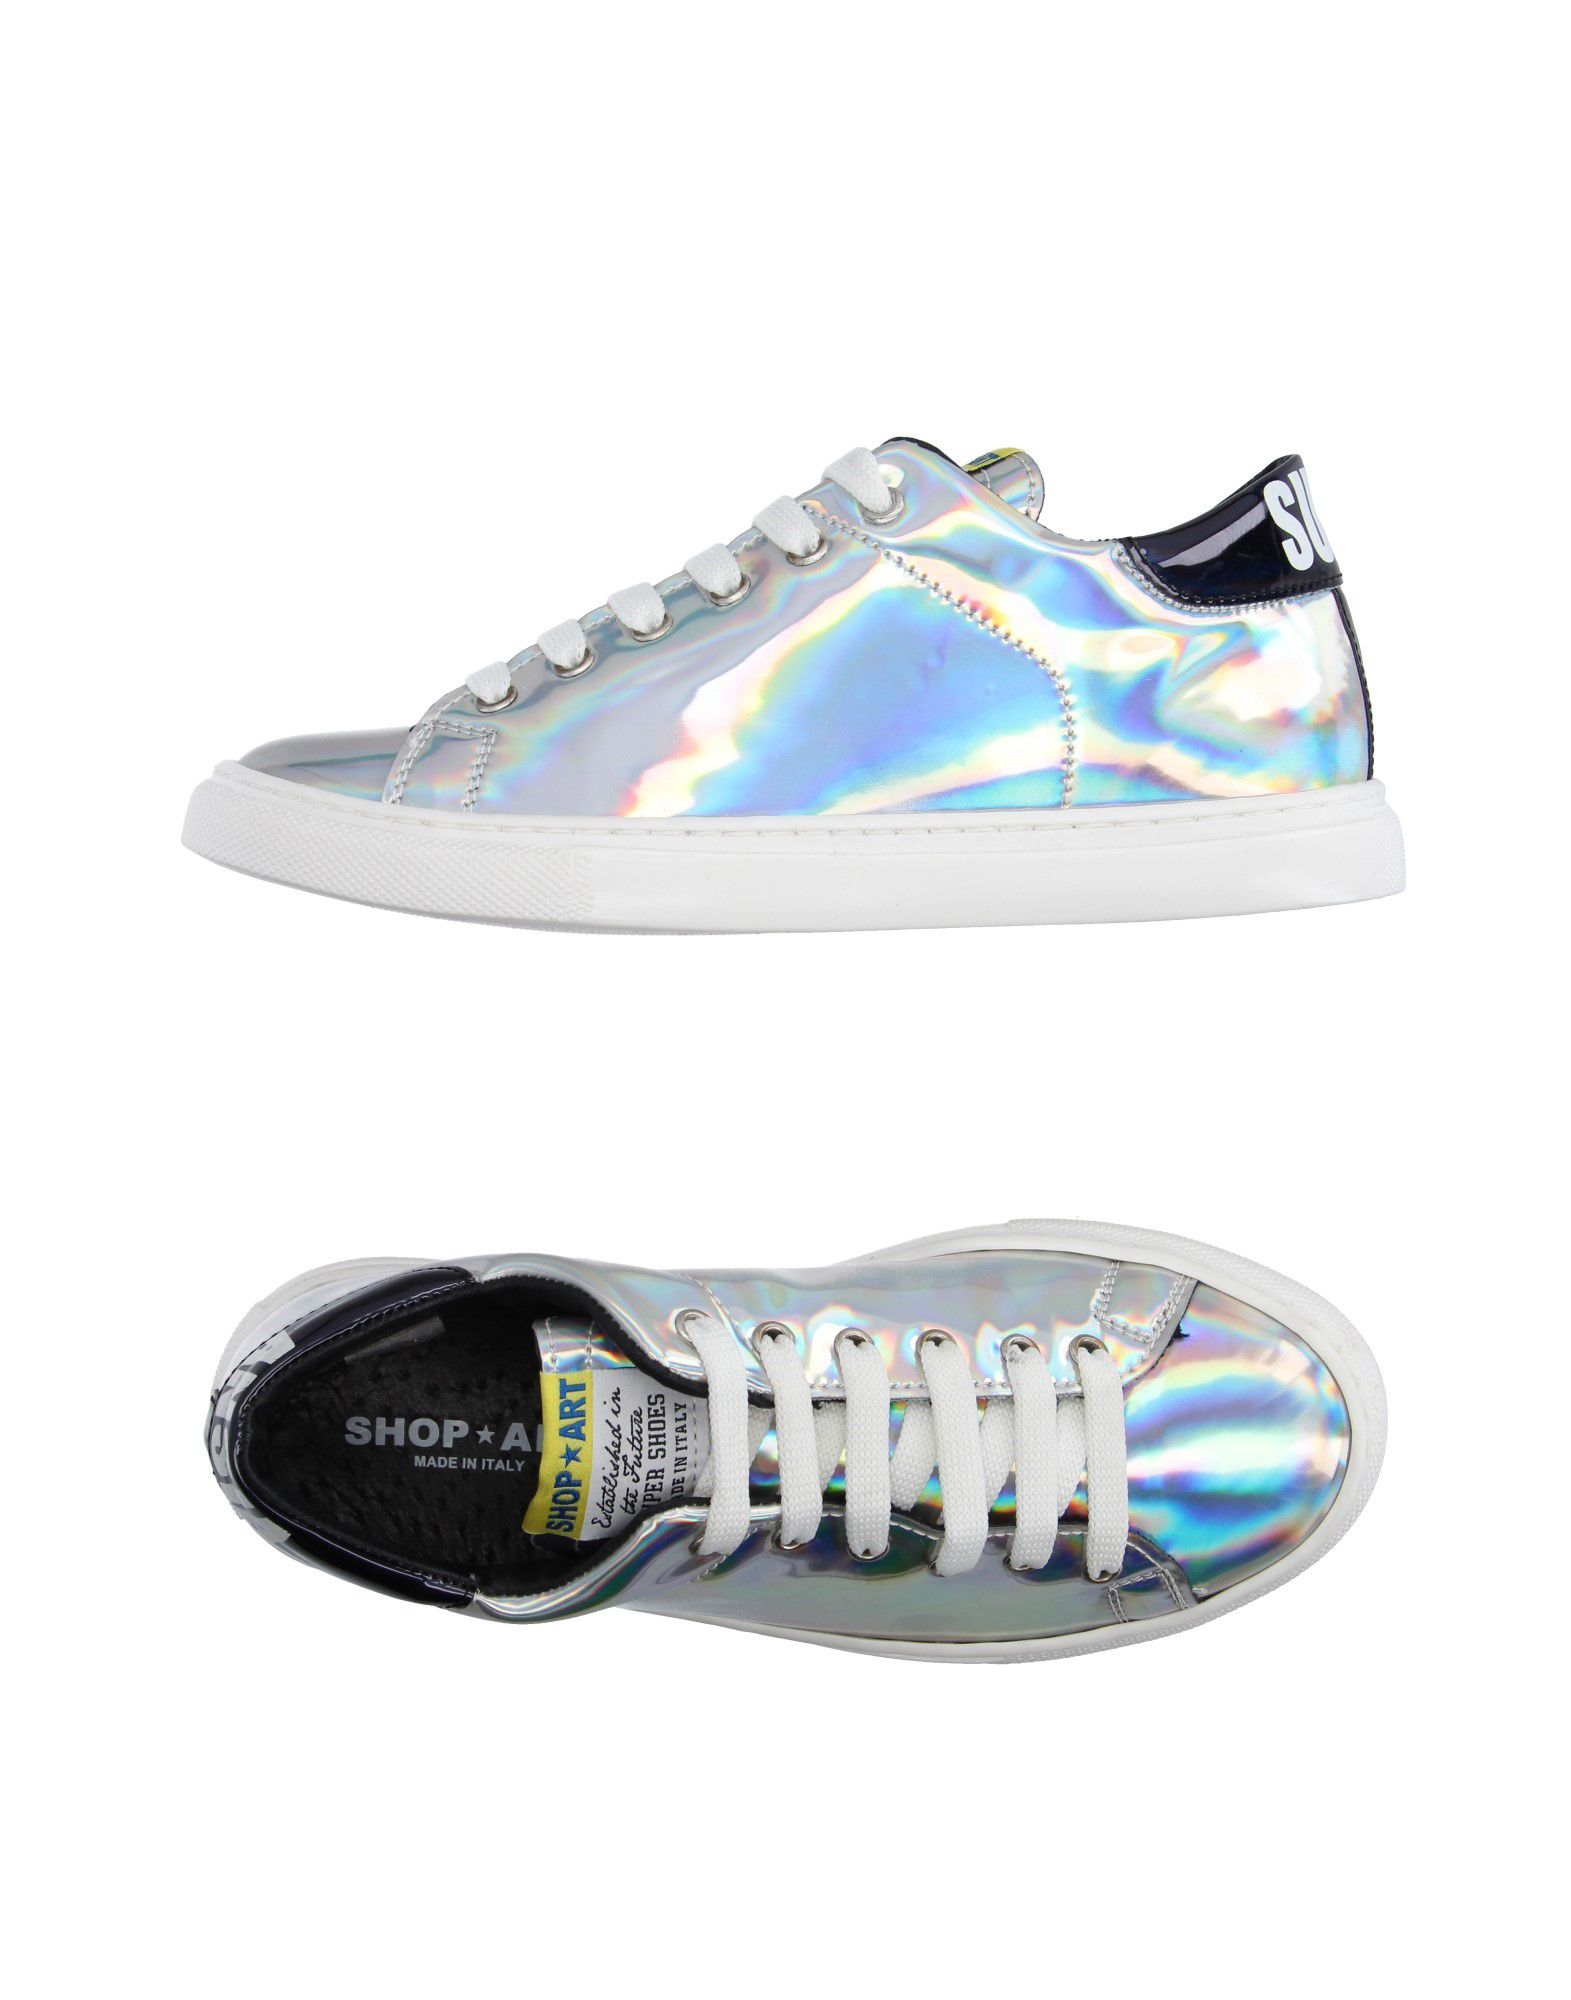 Sneakers Shop ★ Art Femme - Sneakers Shop ★ Art sur